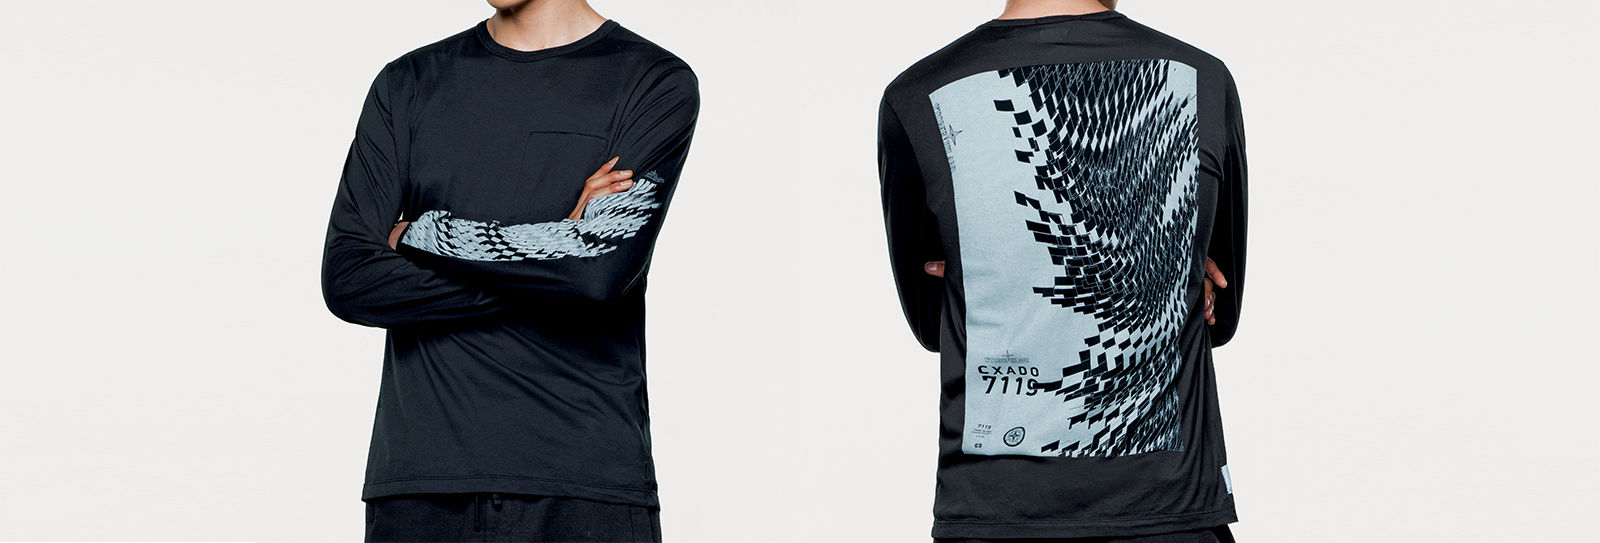 Model wearing dark colored long sleeve t shirt with graphics printed on left arm and back.